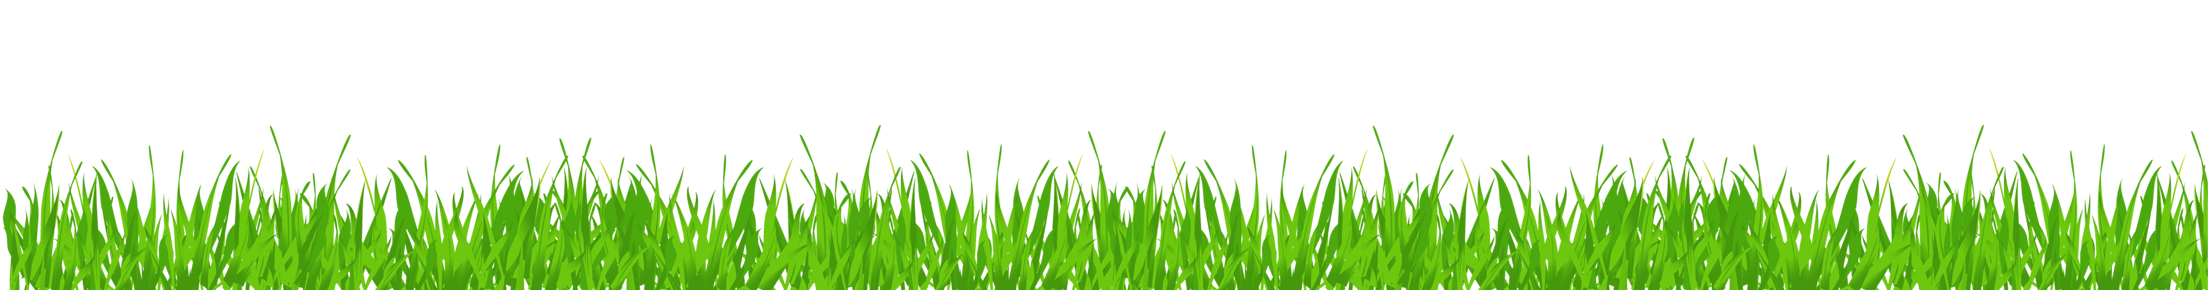 Grass banner png. Clipart gallery yopriceville high